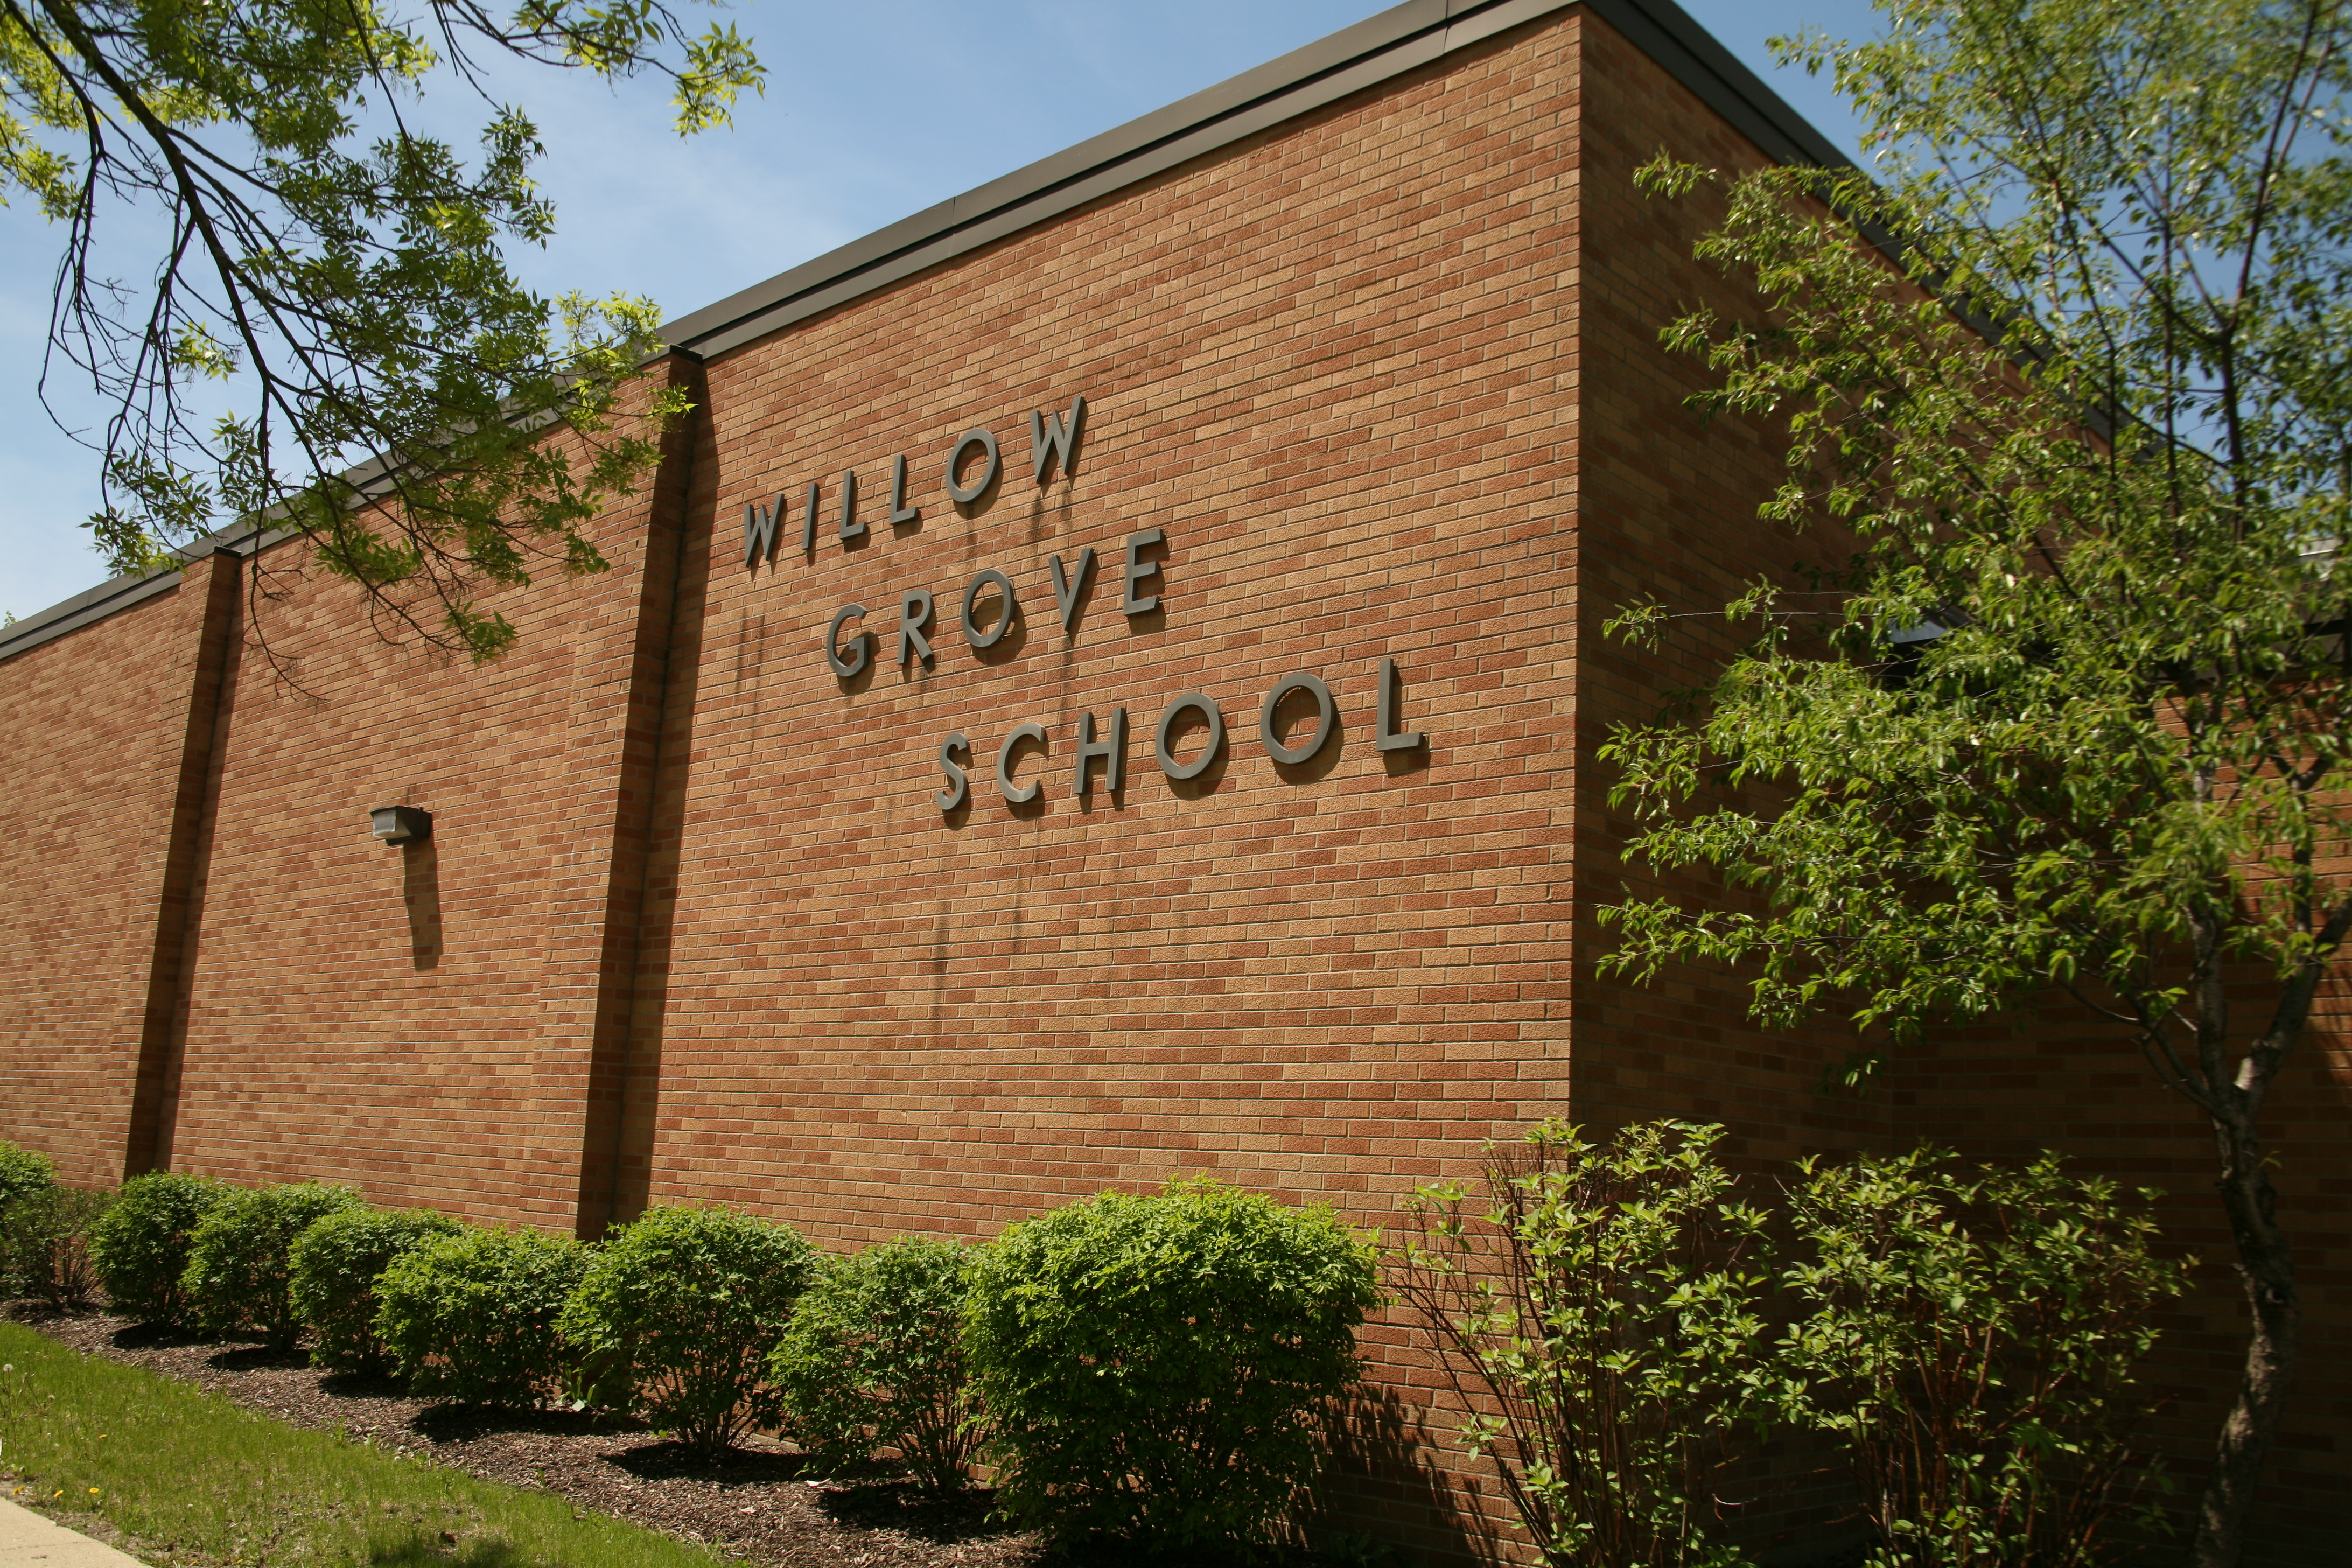 Willow Grove School Building